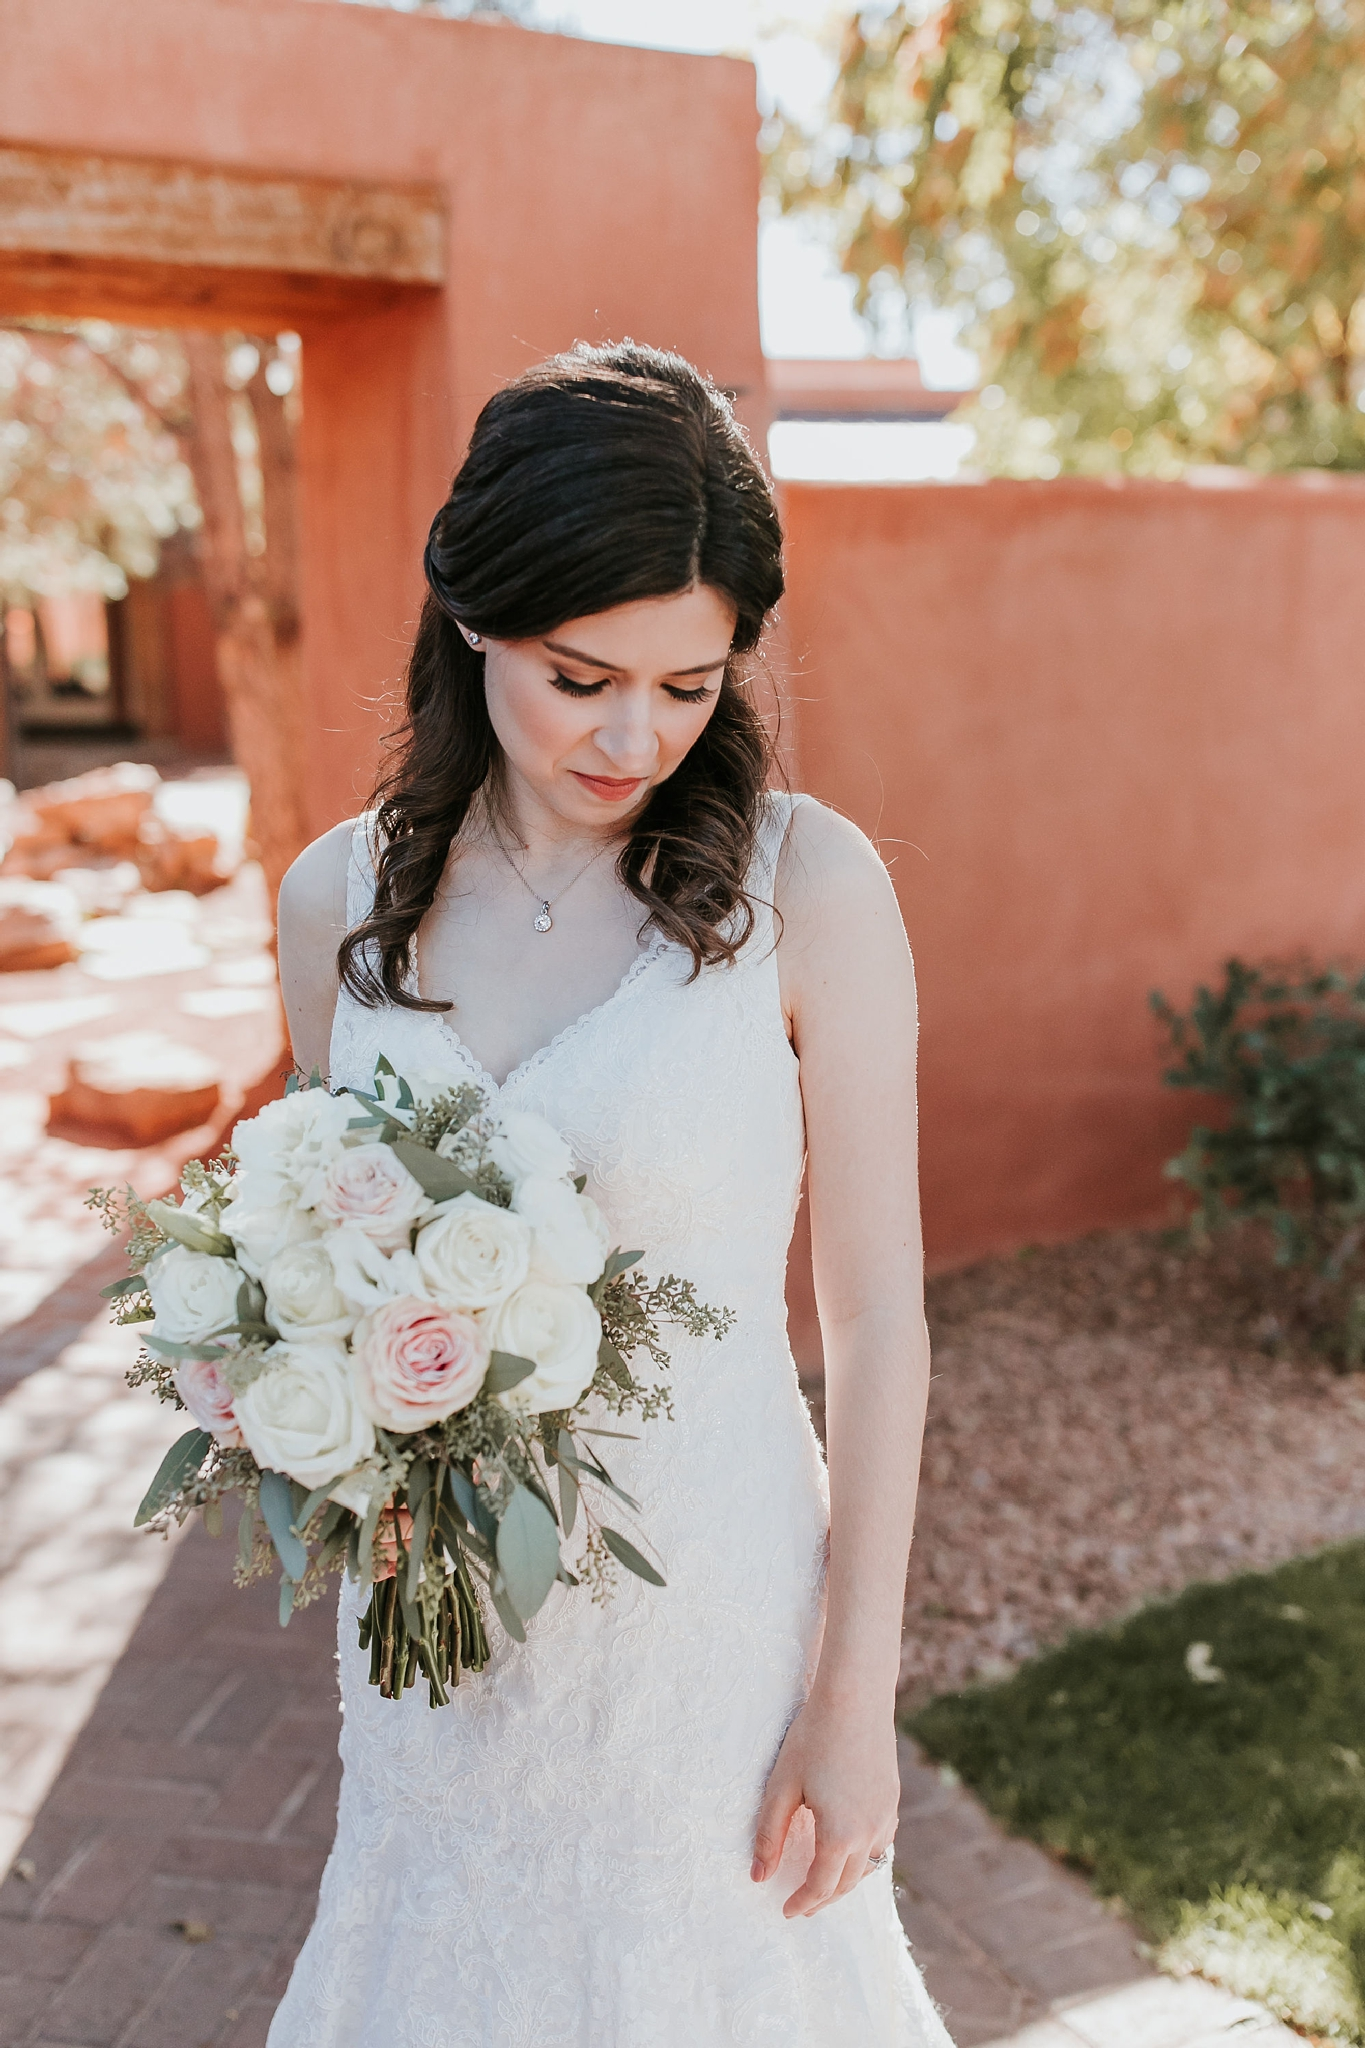 Alicia+lucia+photography+-+albuquerque+wedding+photographer+-+santa+fe+wedding+photography+-+new+mexico+wedding+photographer+-+new+mexico+wedding+-+santa+fe+wedding+-+albuquerque+wedding+-+bridal+hair_0022.jpg